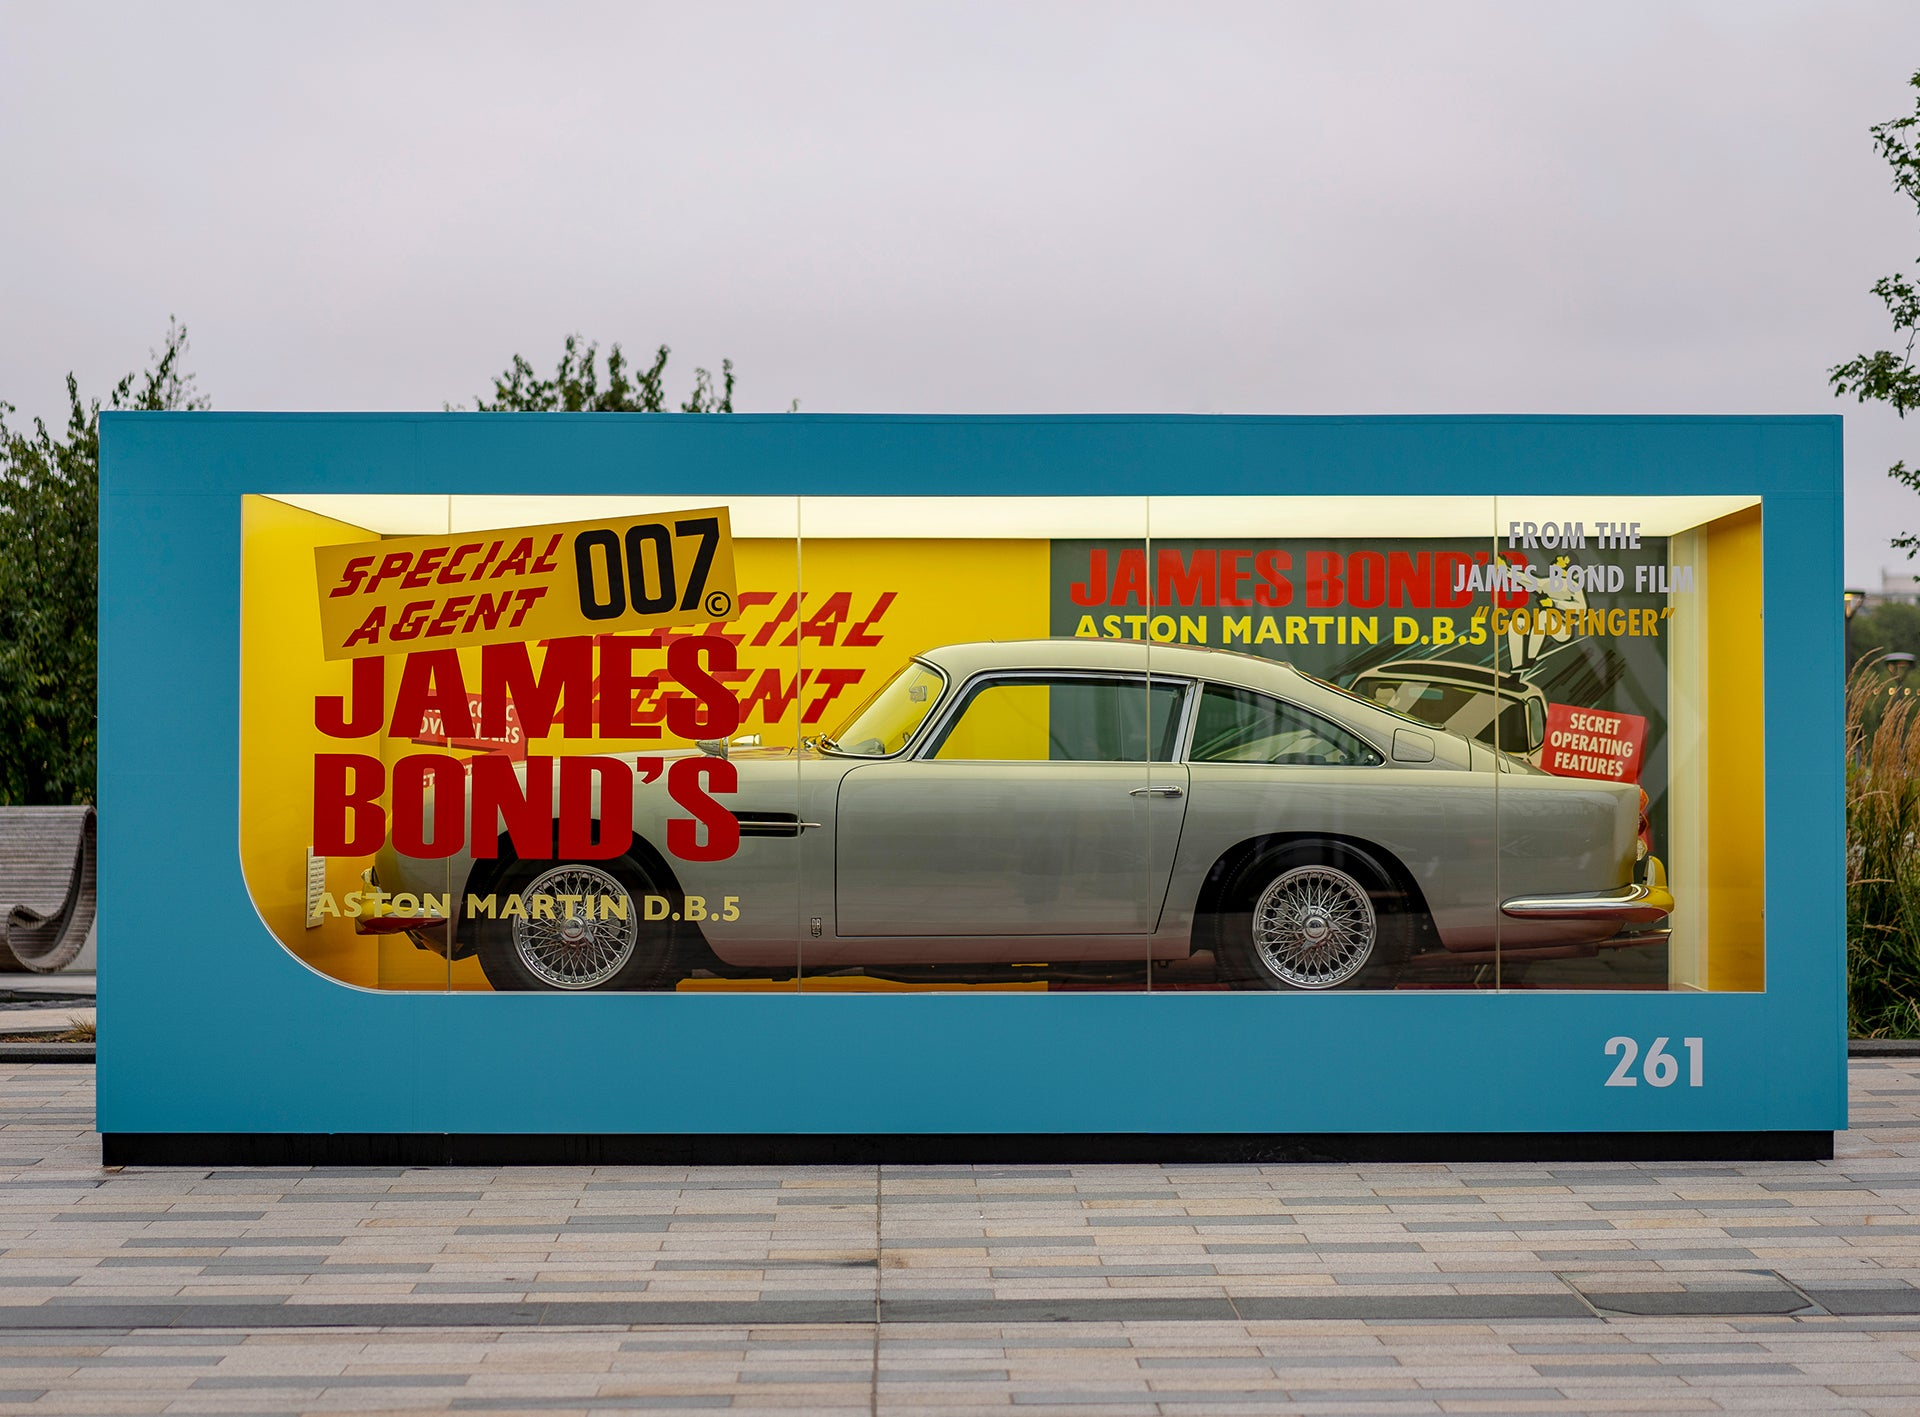 Luxury Car Maker's <i>No Time To Die</I> Campaign Launched in London